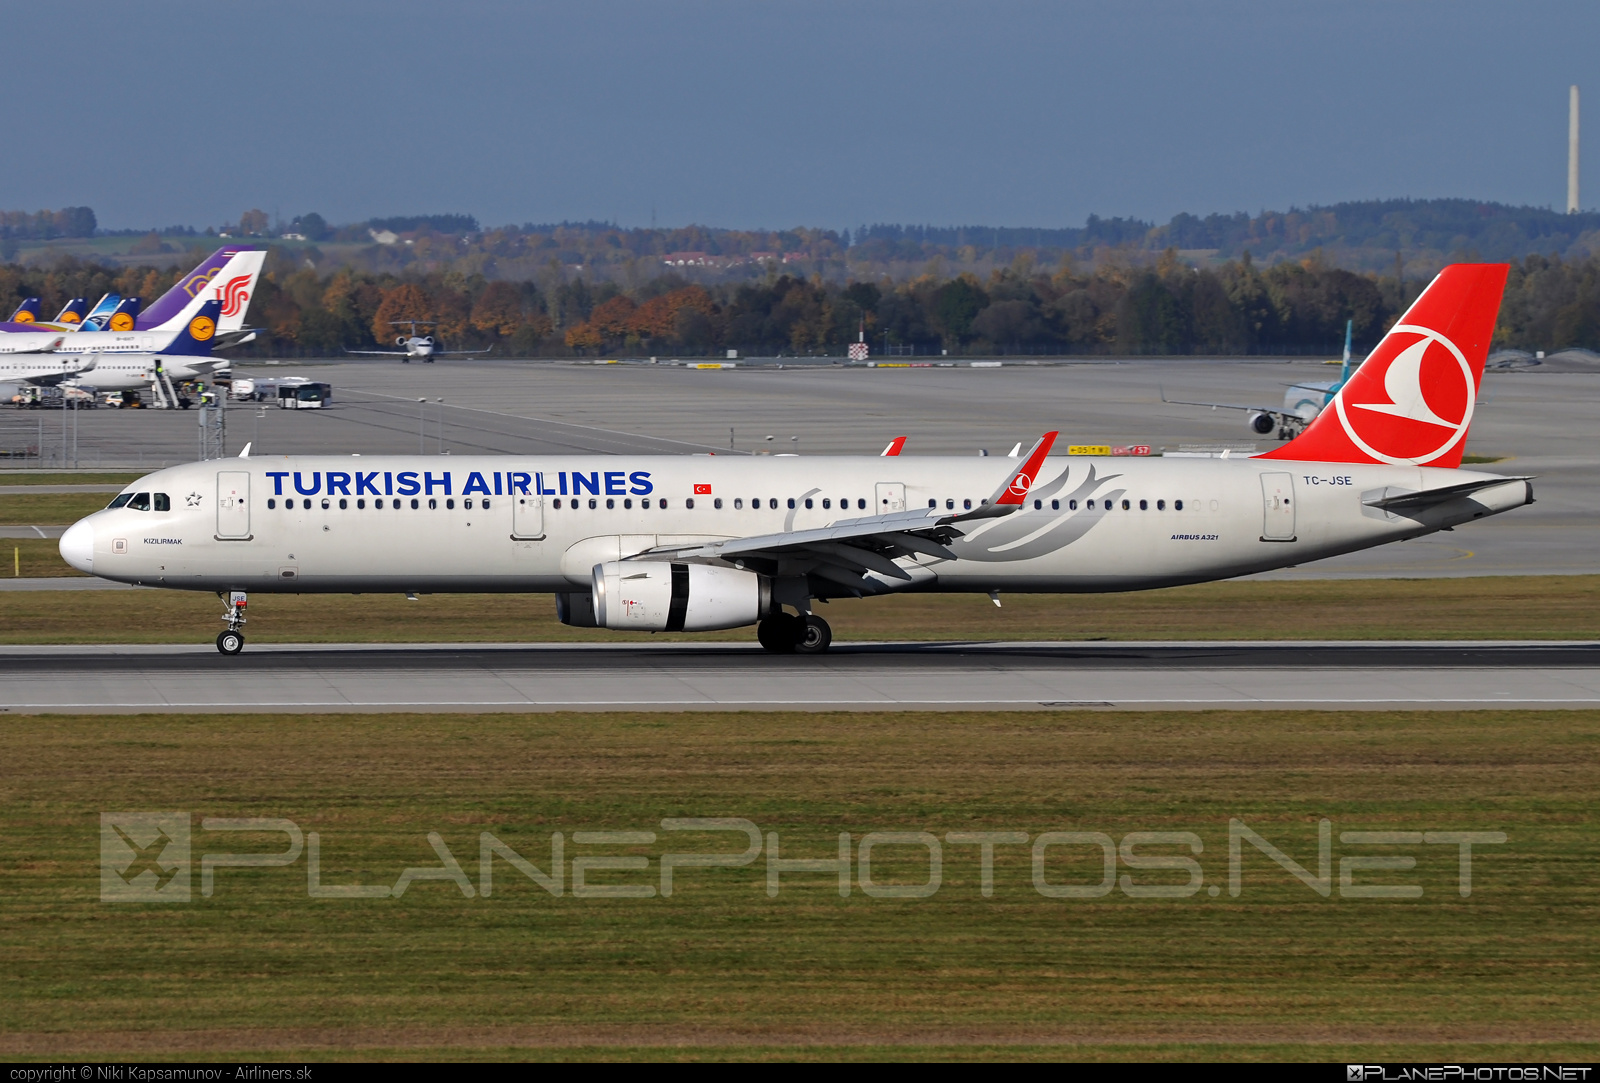 Airbus A321-231 - TC-JSE operated by Turkish Airlines #a320family #a321 #airbus #airbus321 #turkishairlines